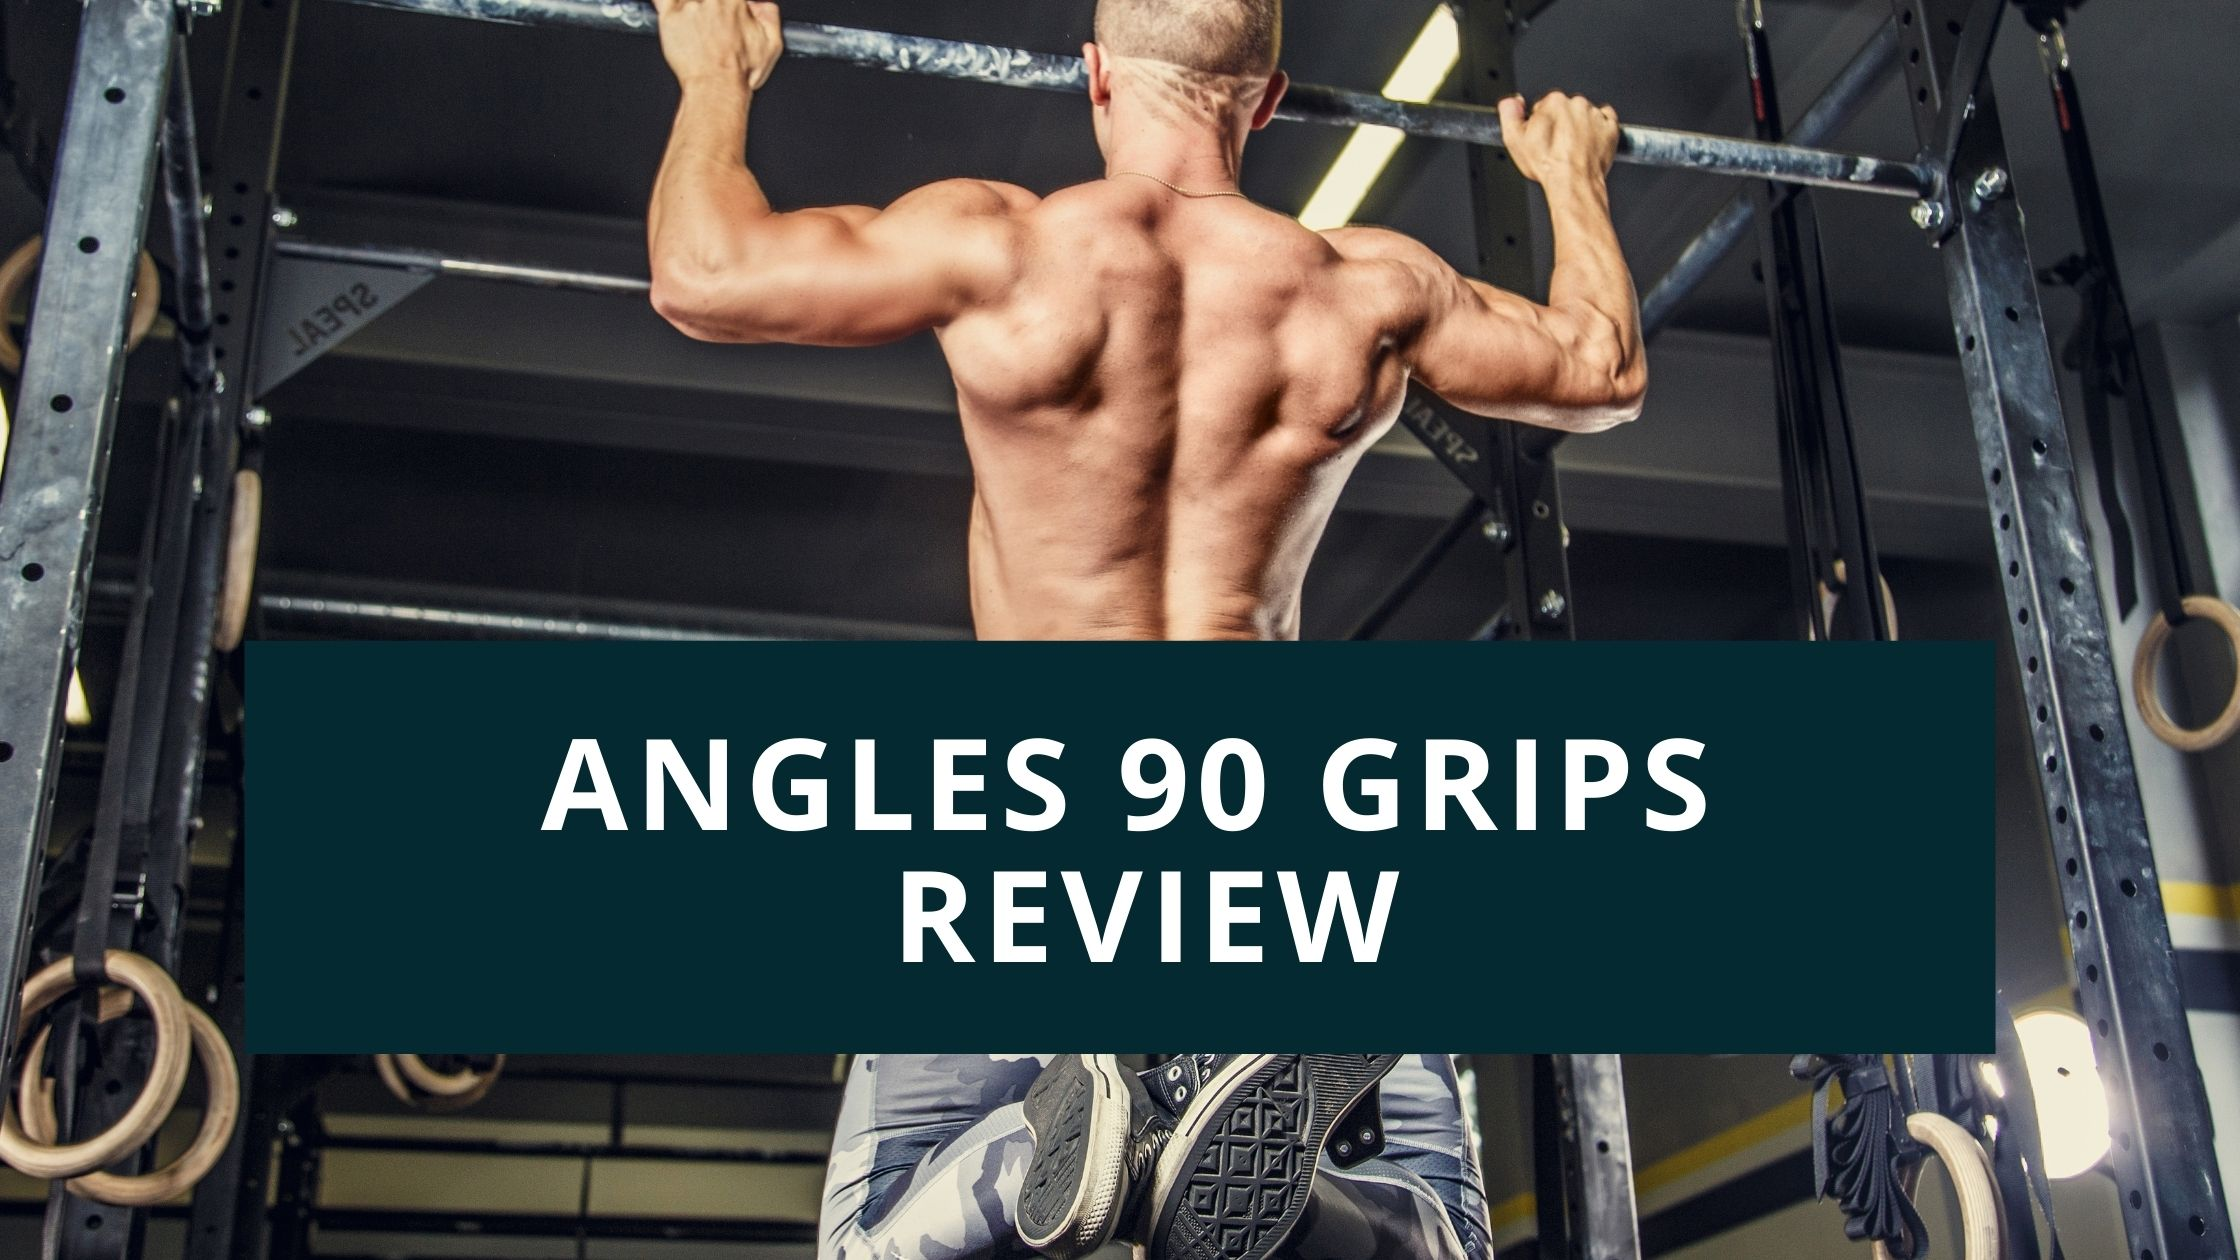 Angles 90 Grips Review